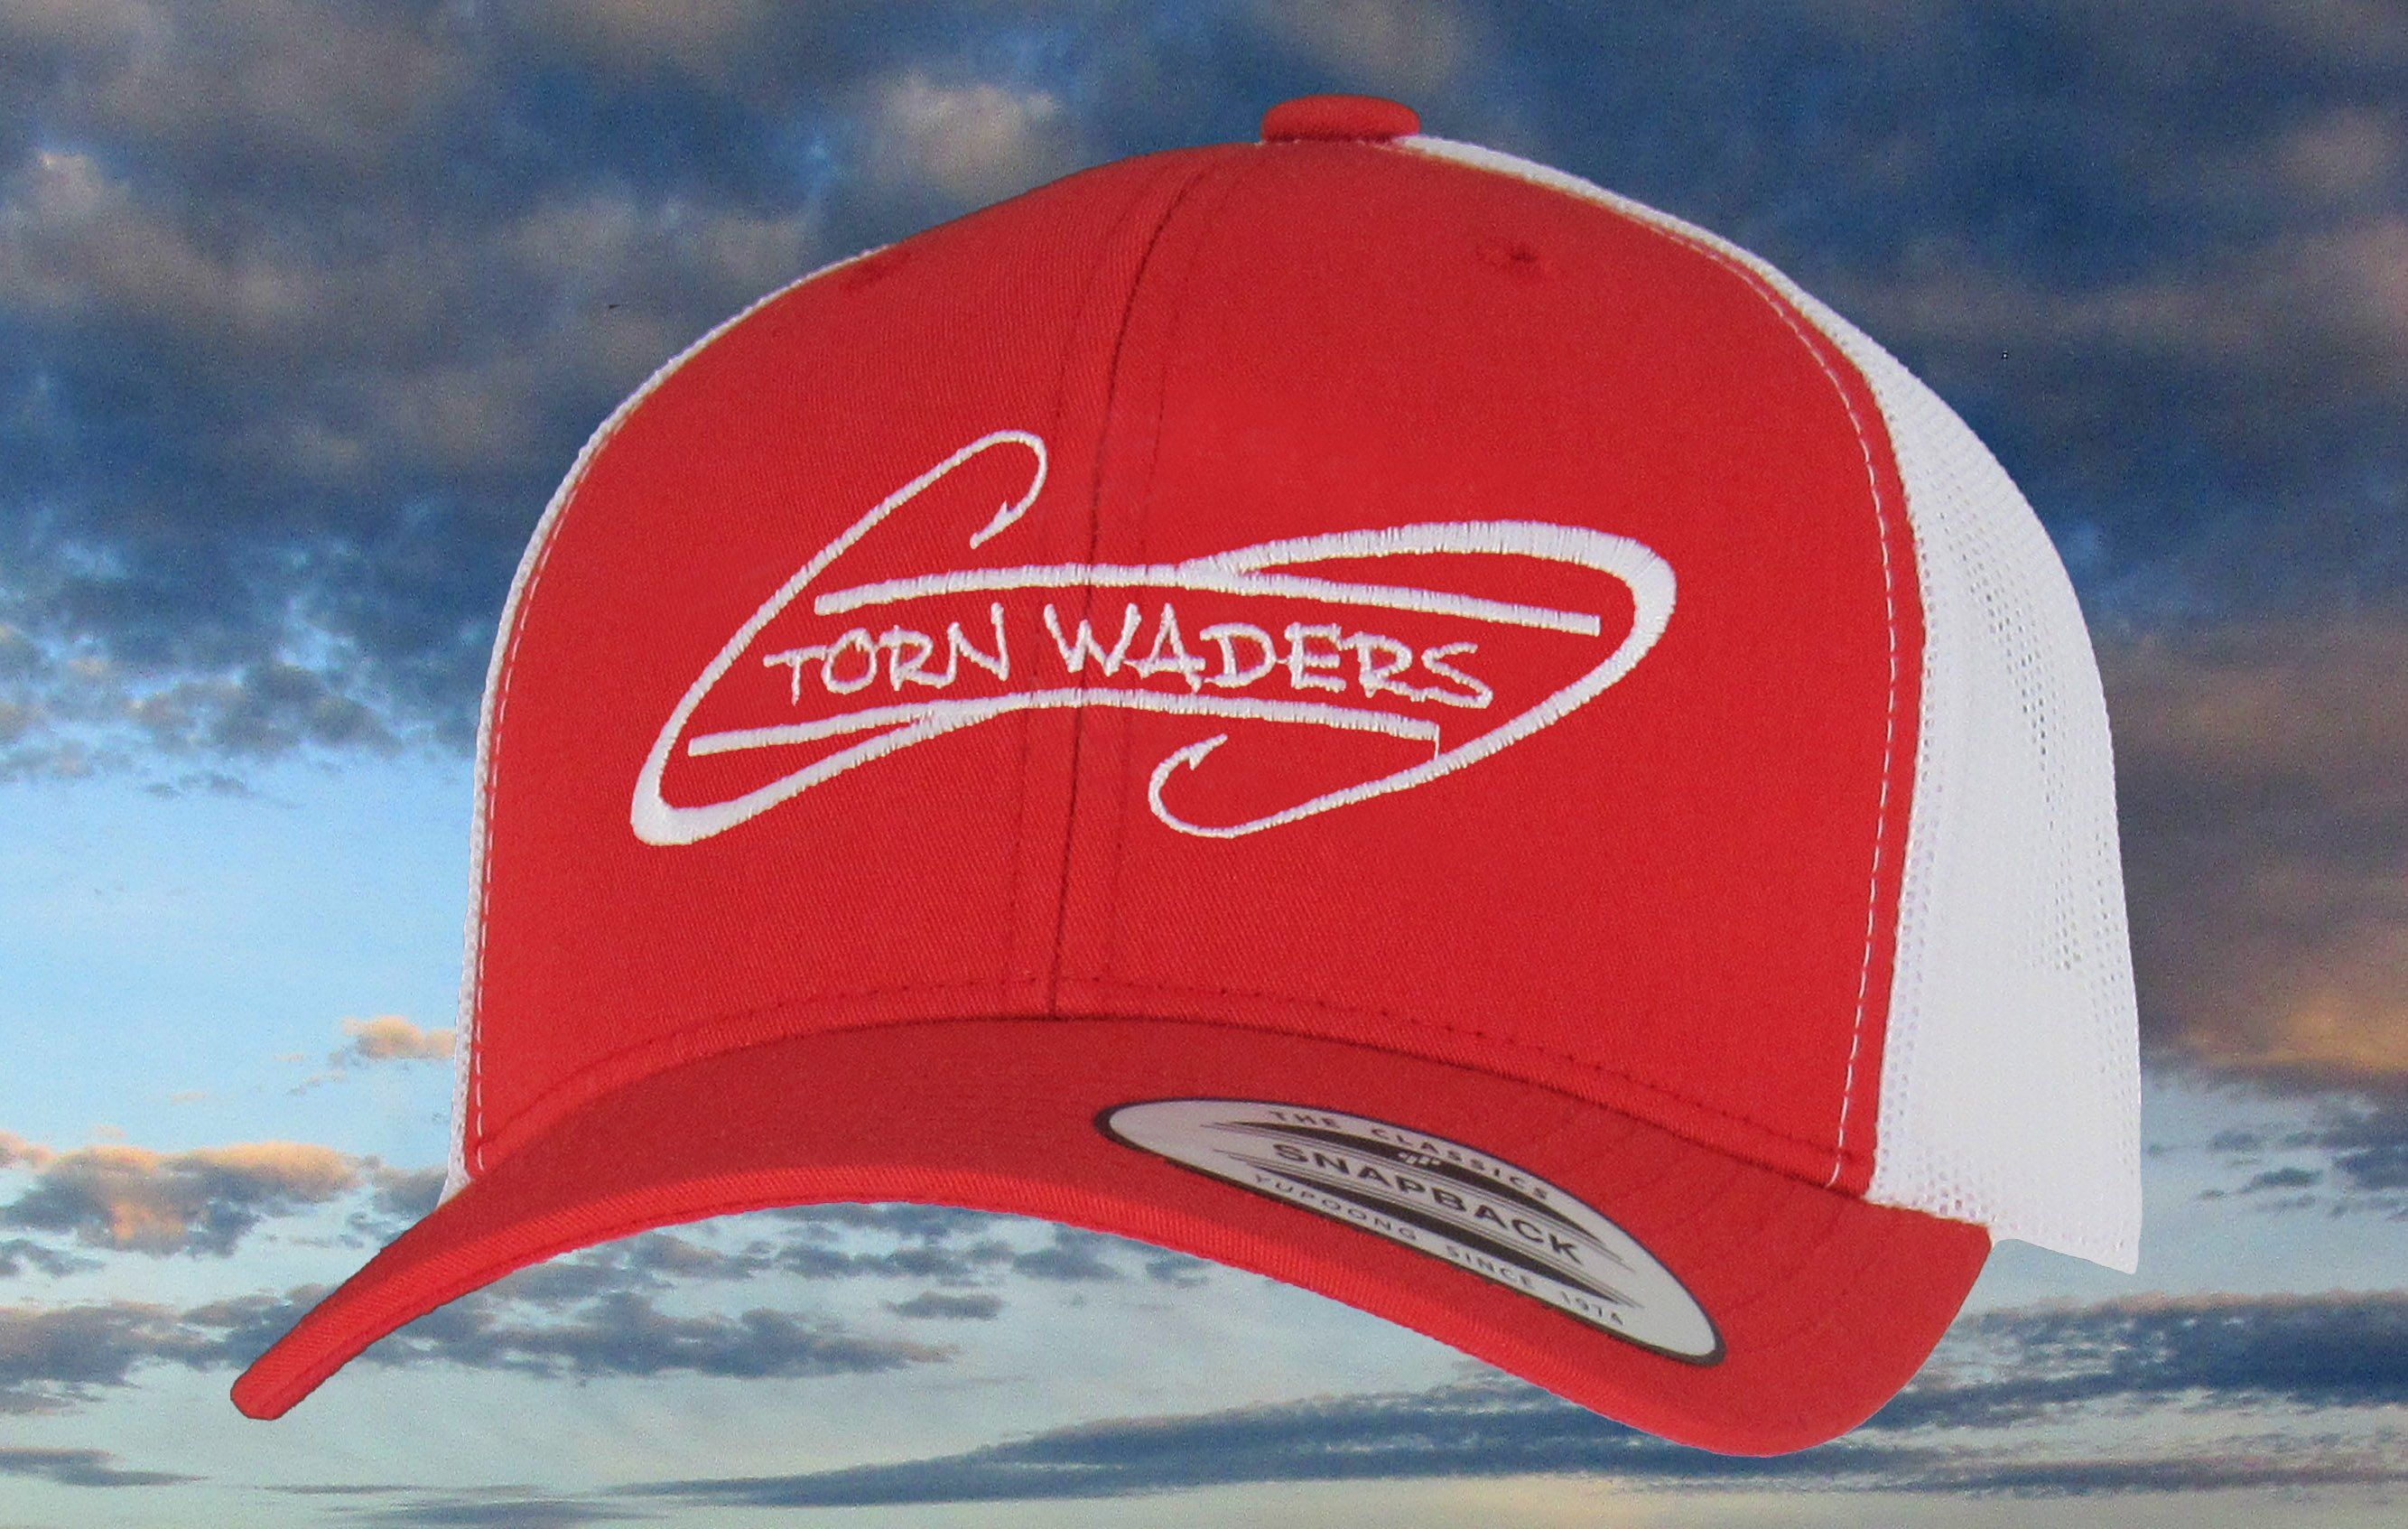 Red and White Embroidered Trucker Fishing Hat.Olive Brushed Cotton Fishing  Hat. These 100 38e6a52032e